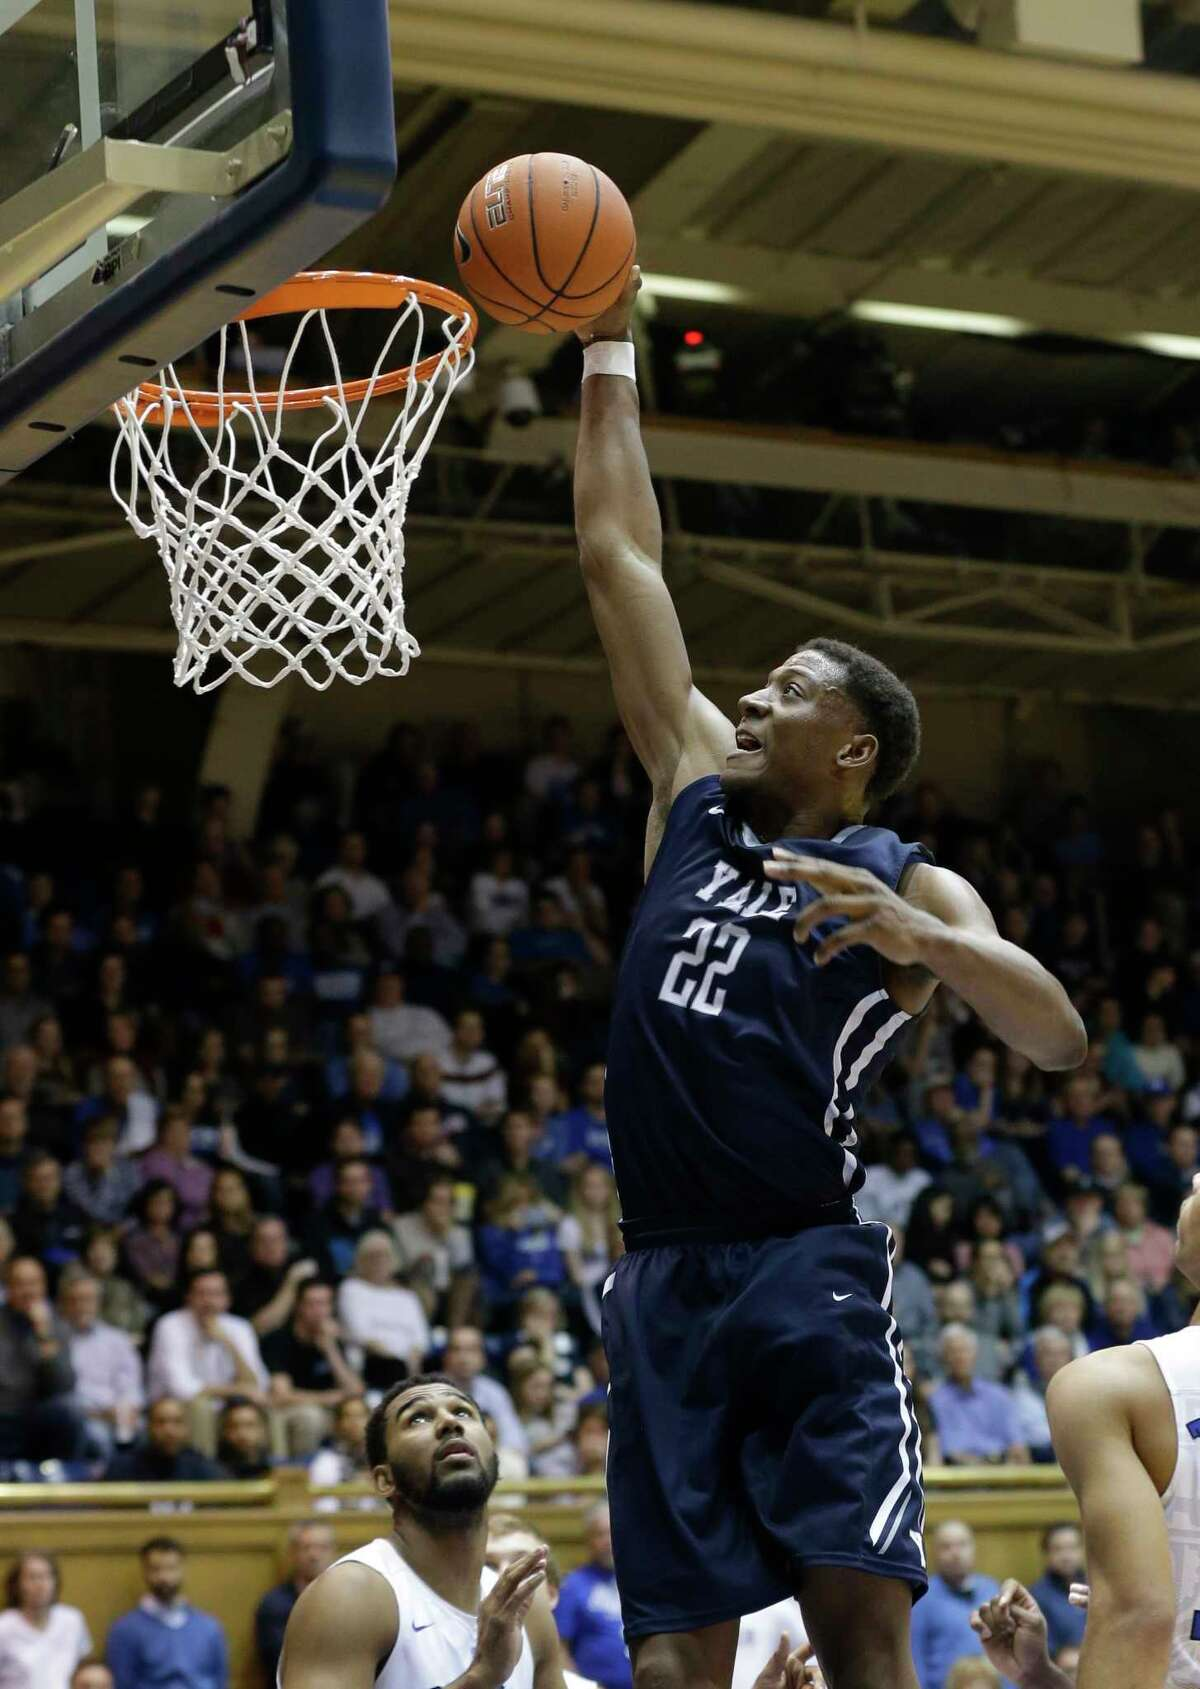 Yale's Justin Sears dunks against Duke during the second half of the Bulldogs' 80-61 loss on Nov. 25.